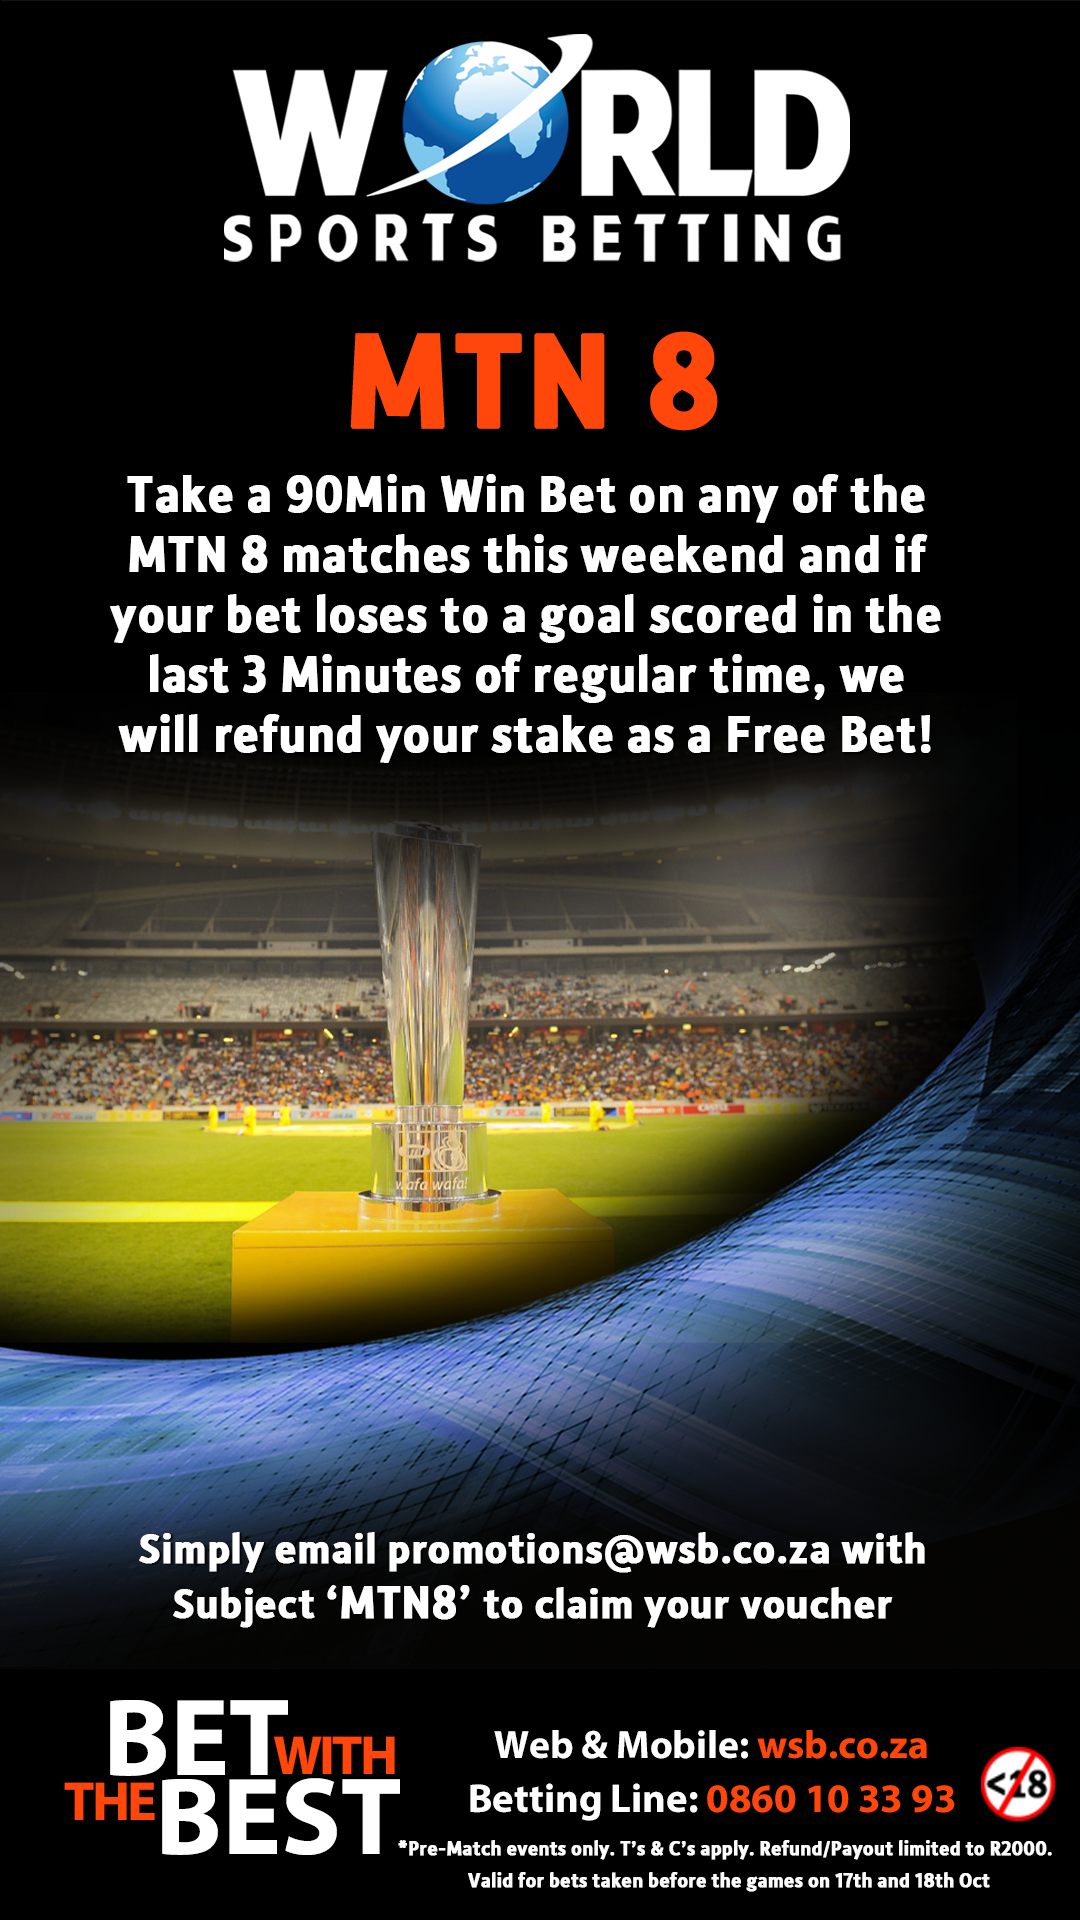 Premier sports betting bet and win us open golf betting games app